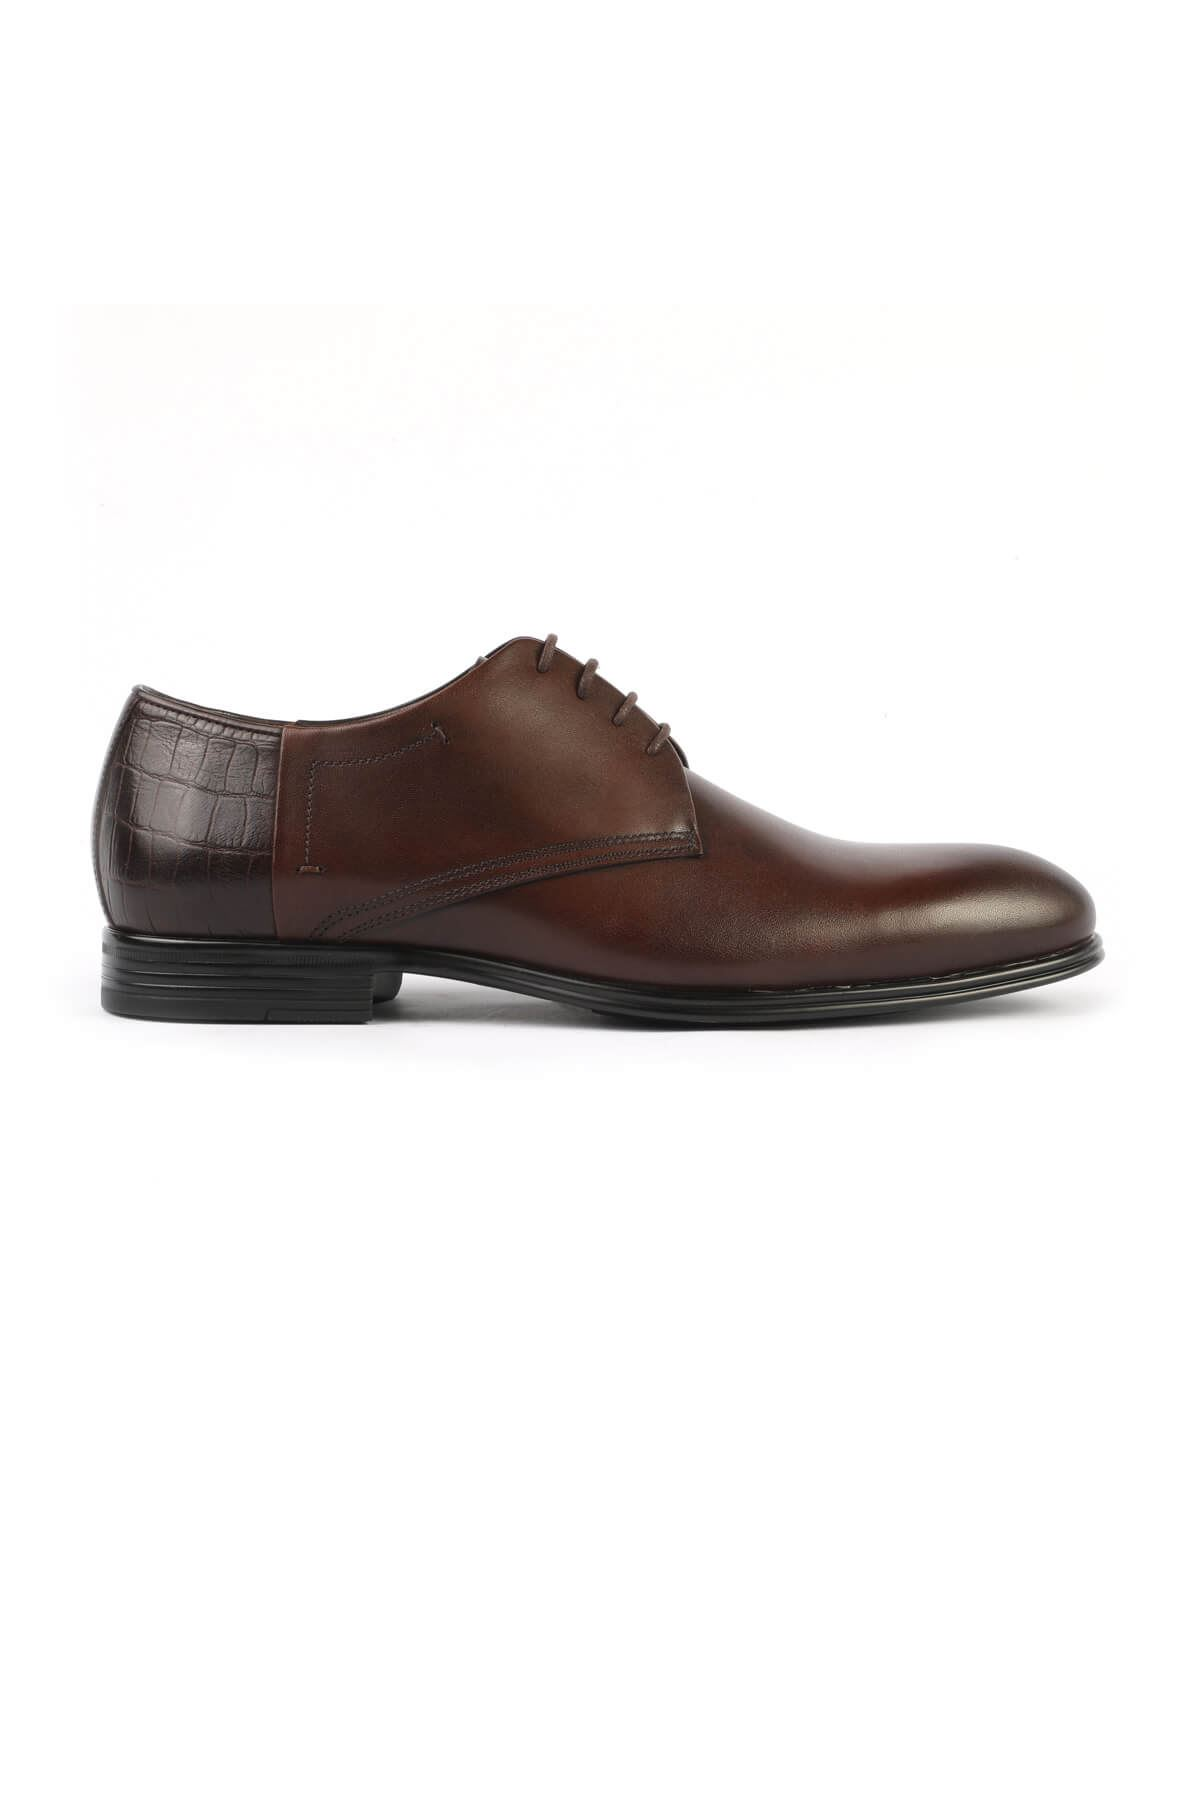 Libero 3111 Brown Classic Shoes